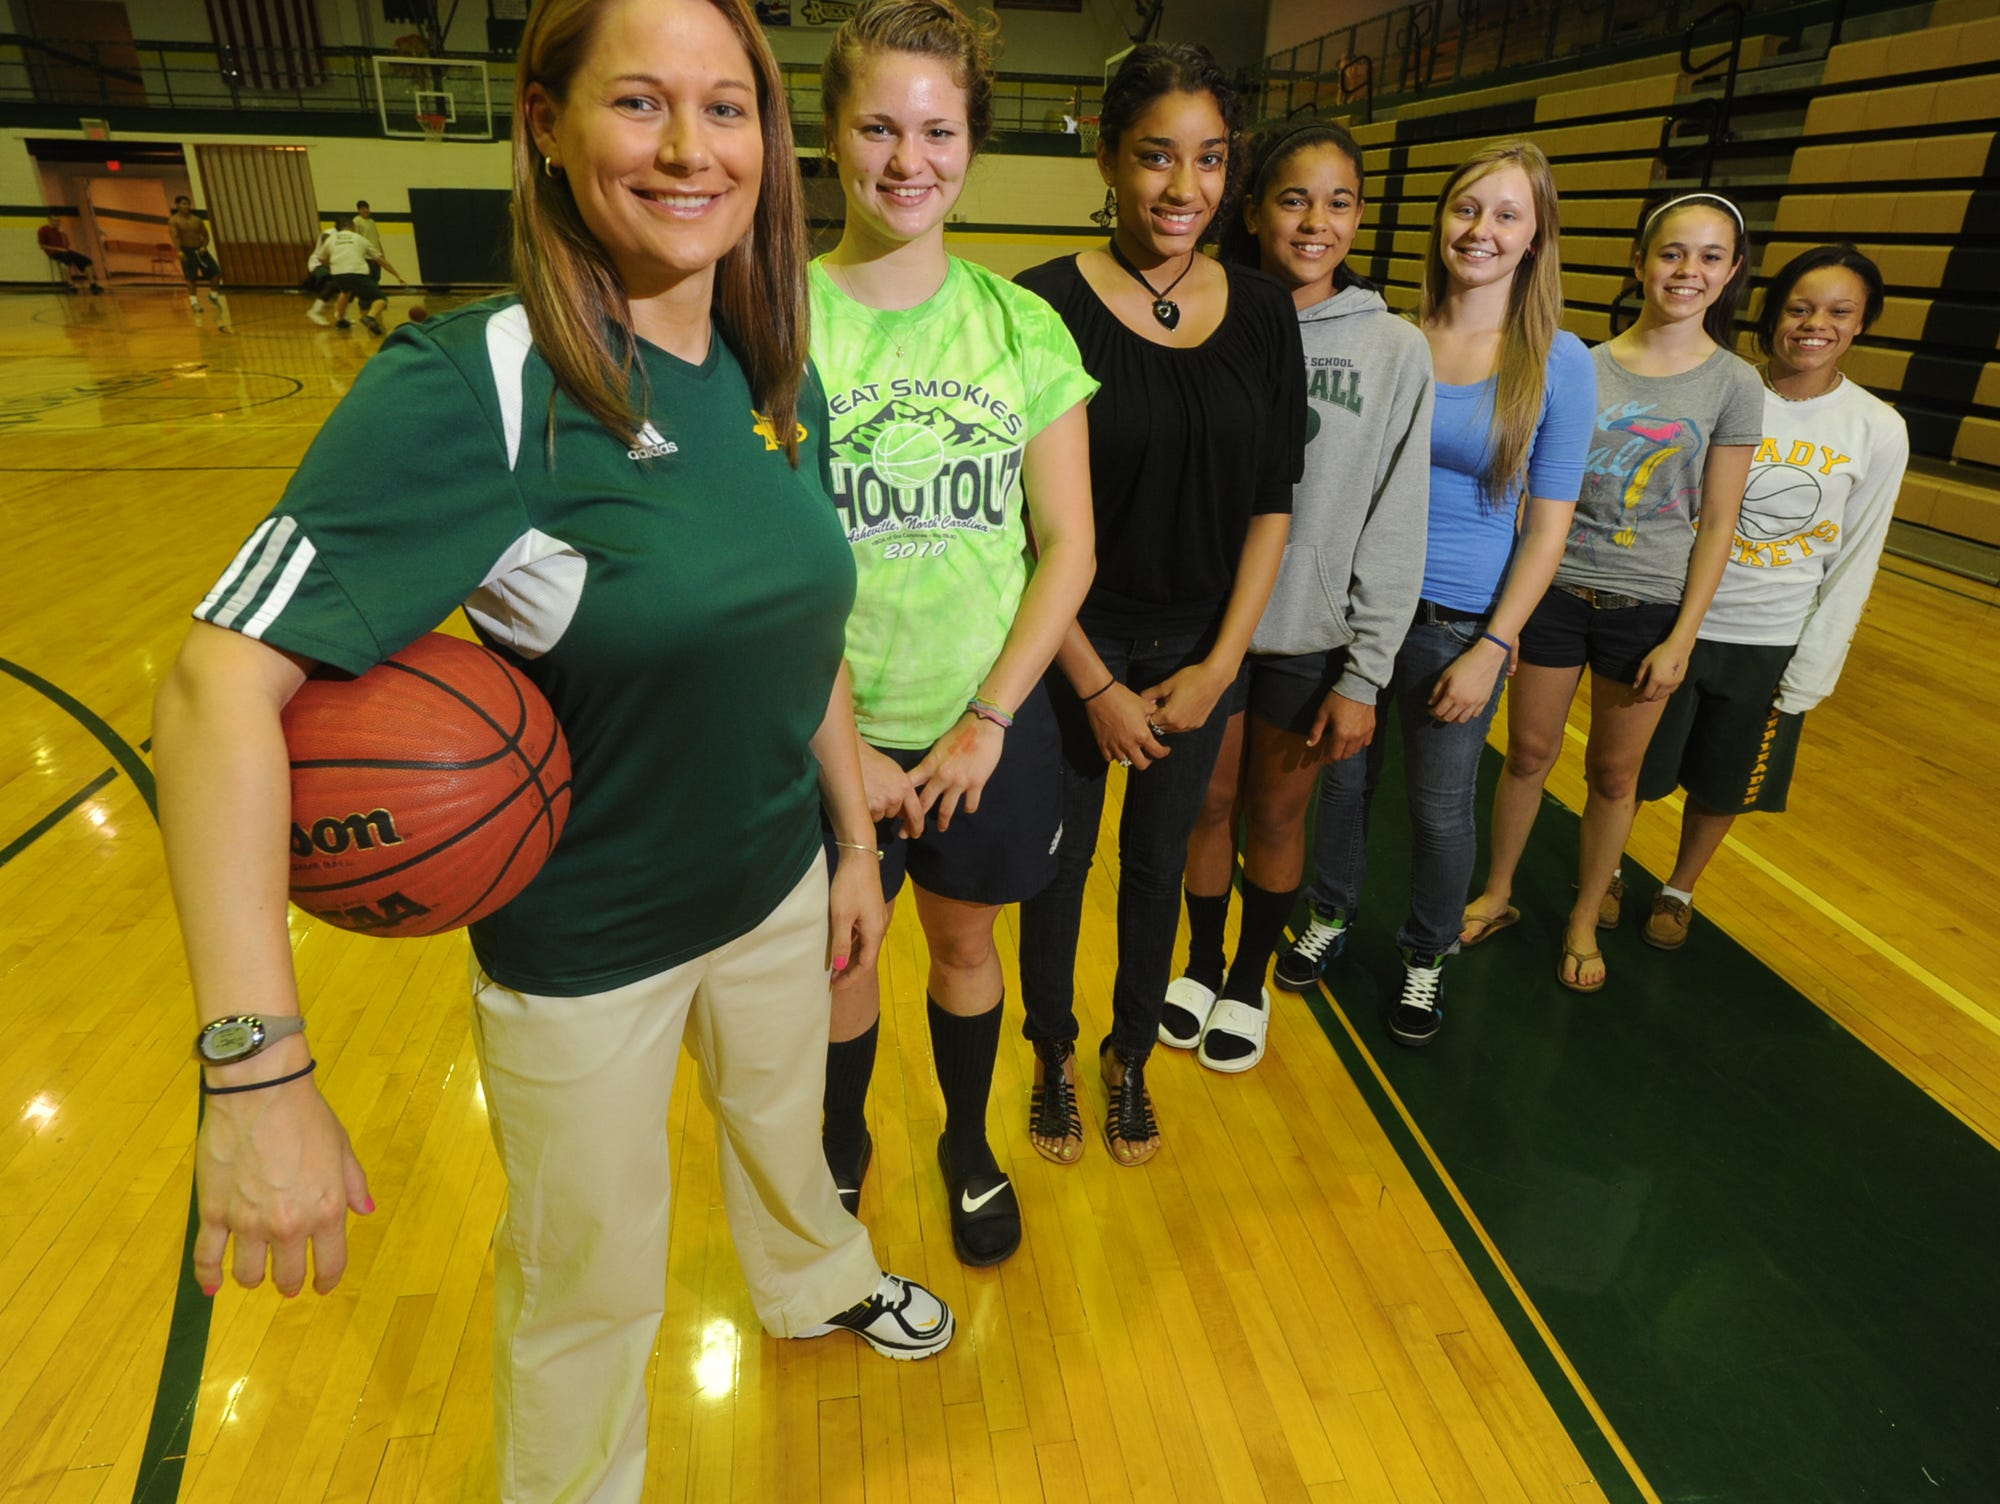 Former Reynolds girls basketball coach Mandy Gladys is the new athletic director at Invest Collegiate Imagine.